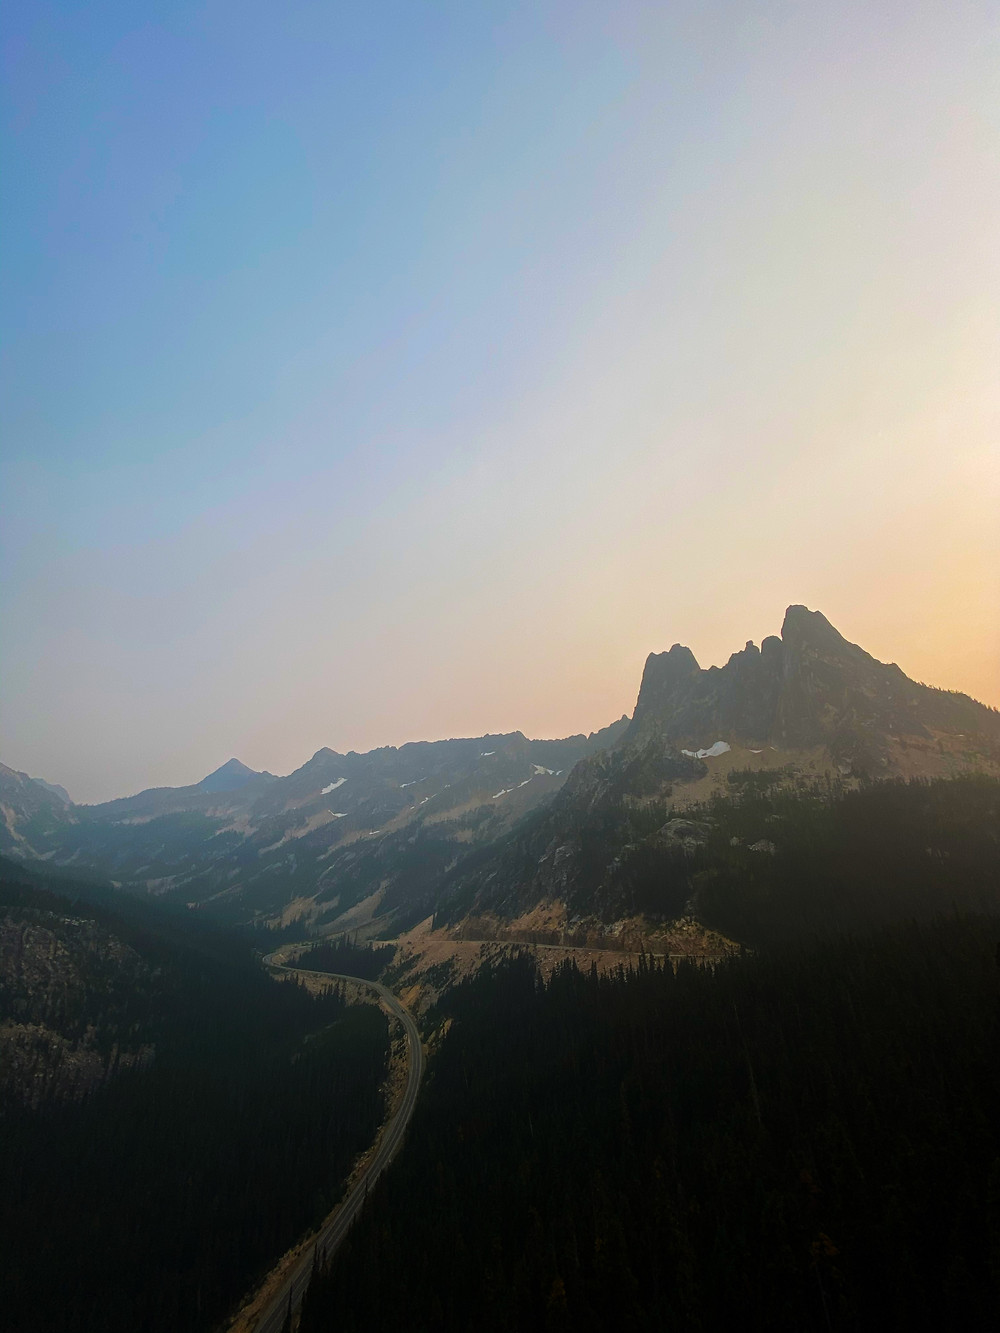 a haze settles over the sun setting on North Cascades National Park. Dark mountains loom as far as the eye can see, under hazy blue sky with the suggestion of an orange sunburst off to the right